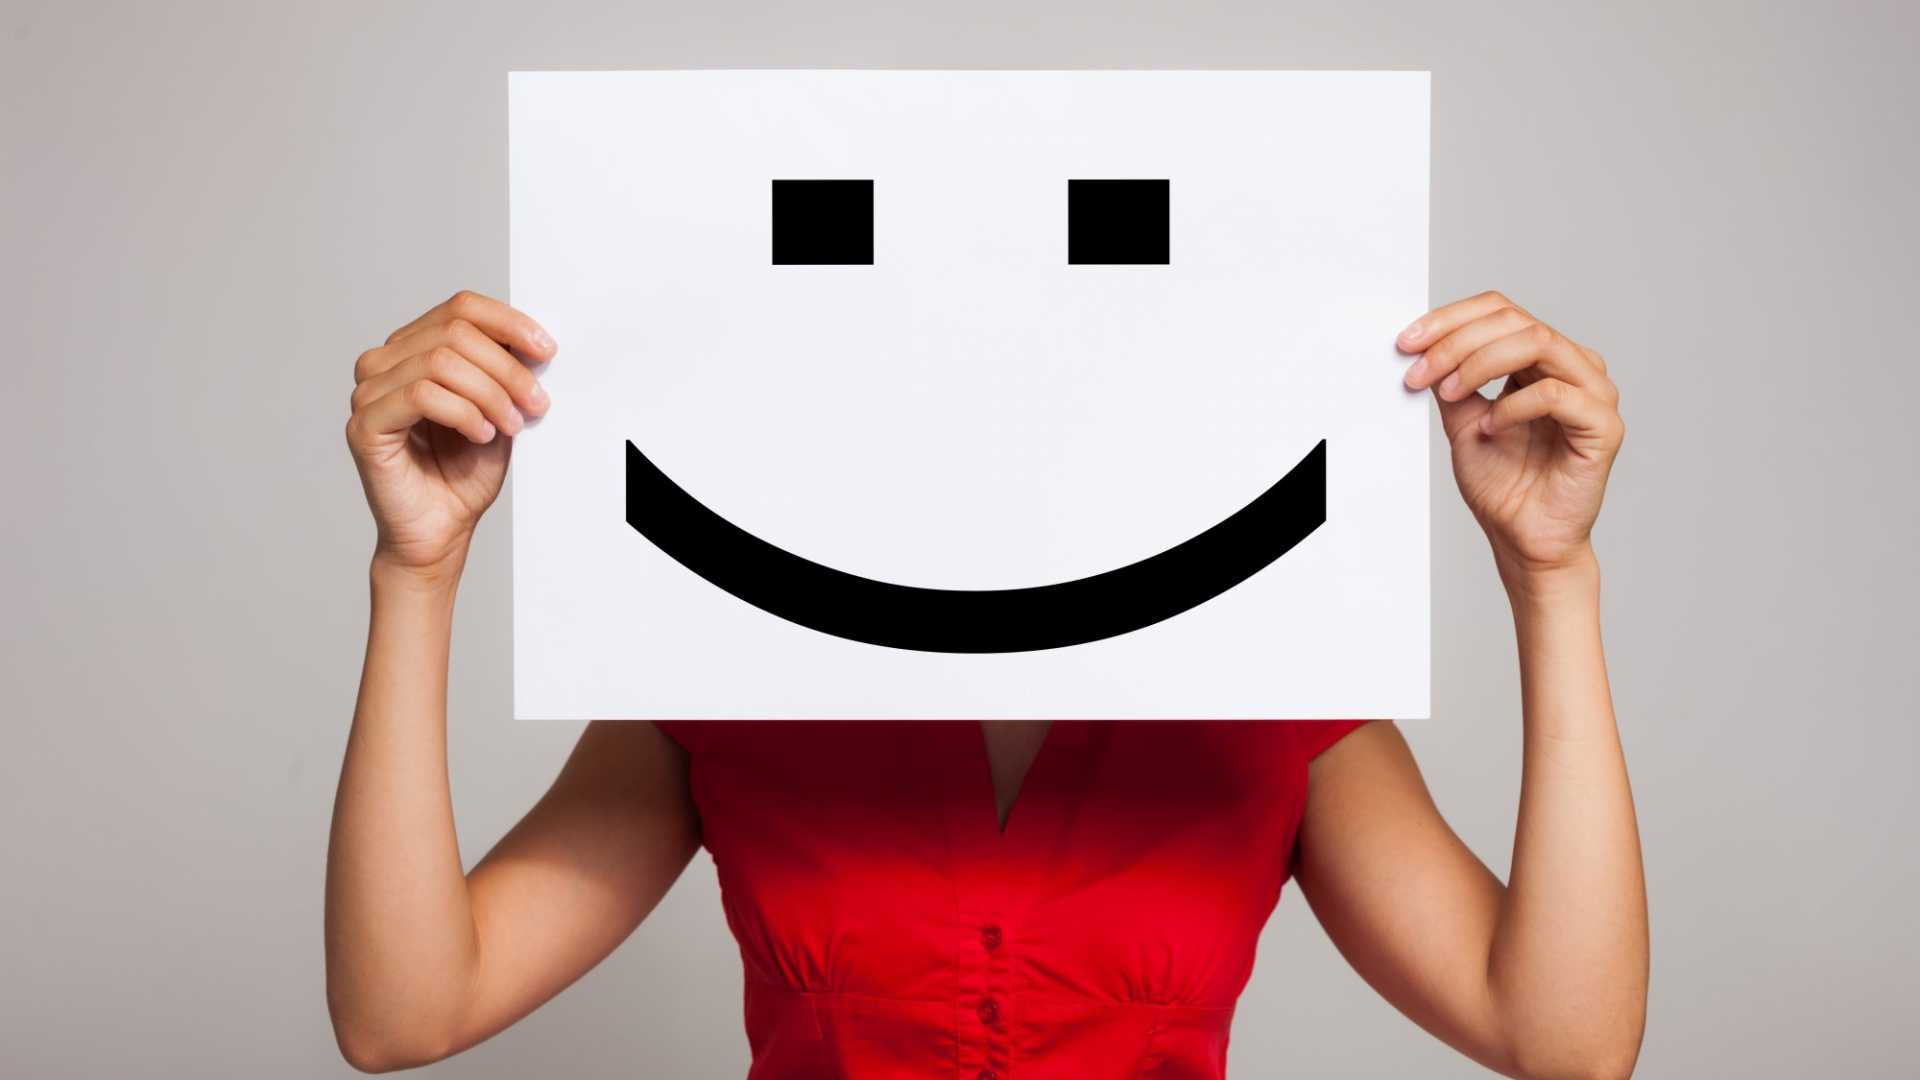 WhyExclamations and Emoticons Can Boost Customer Happiness